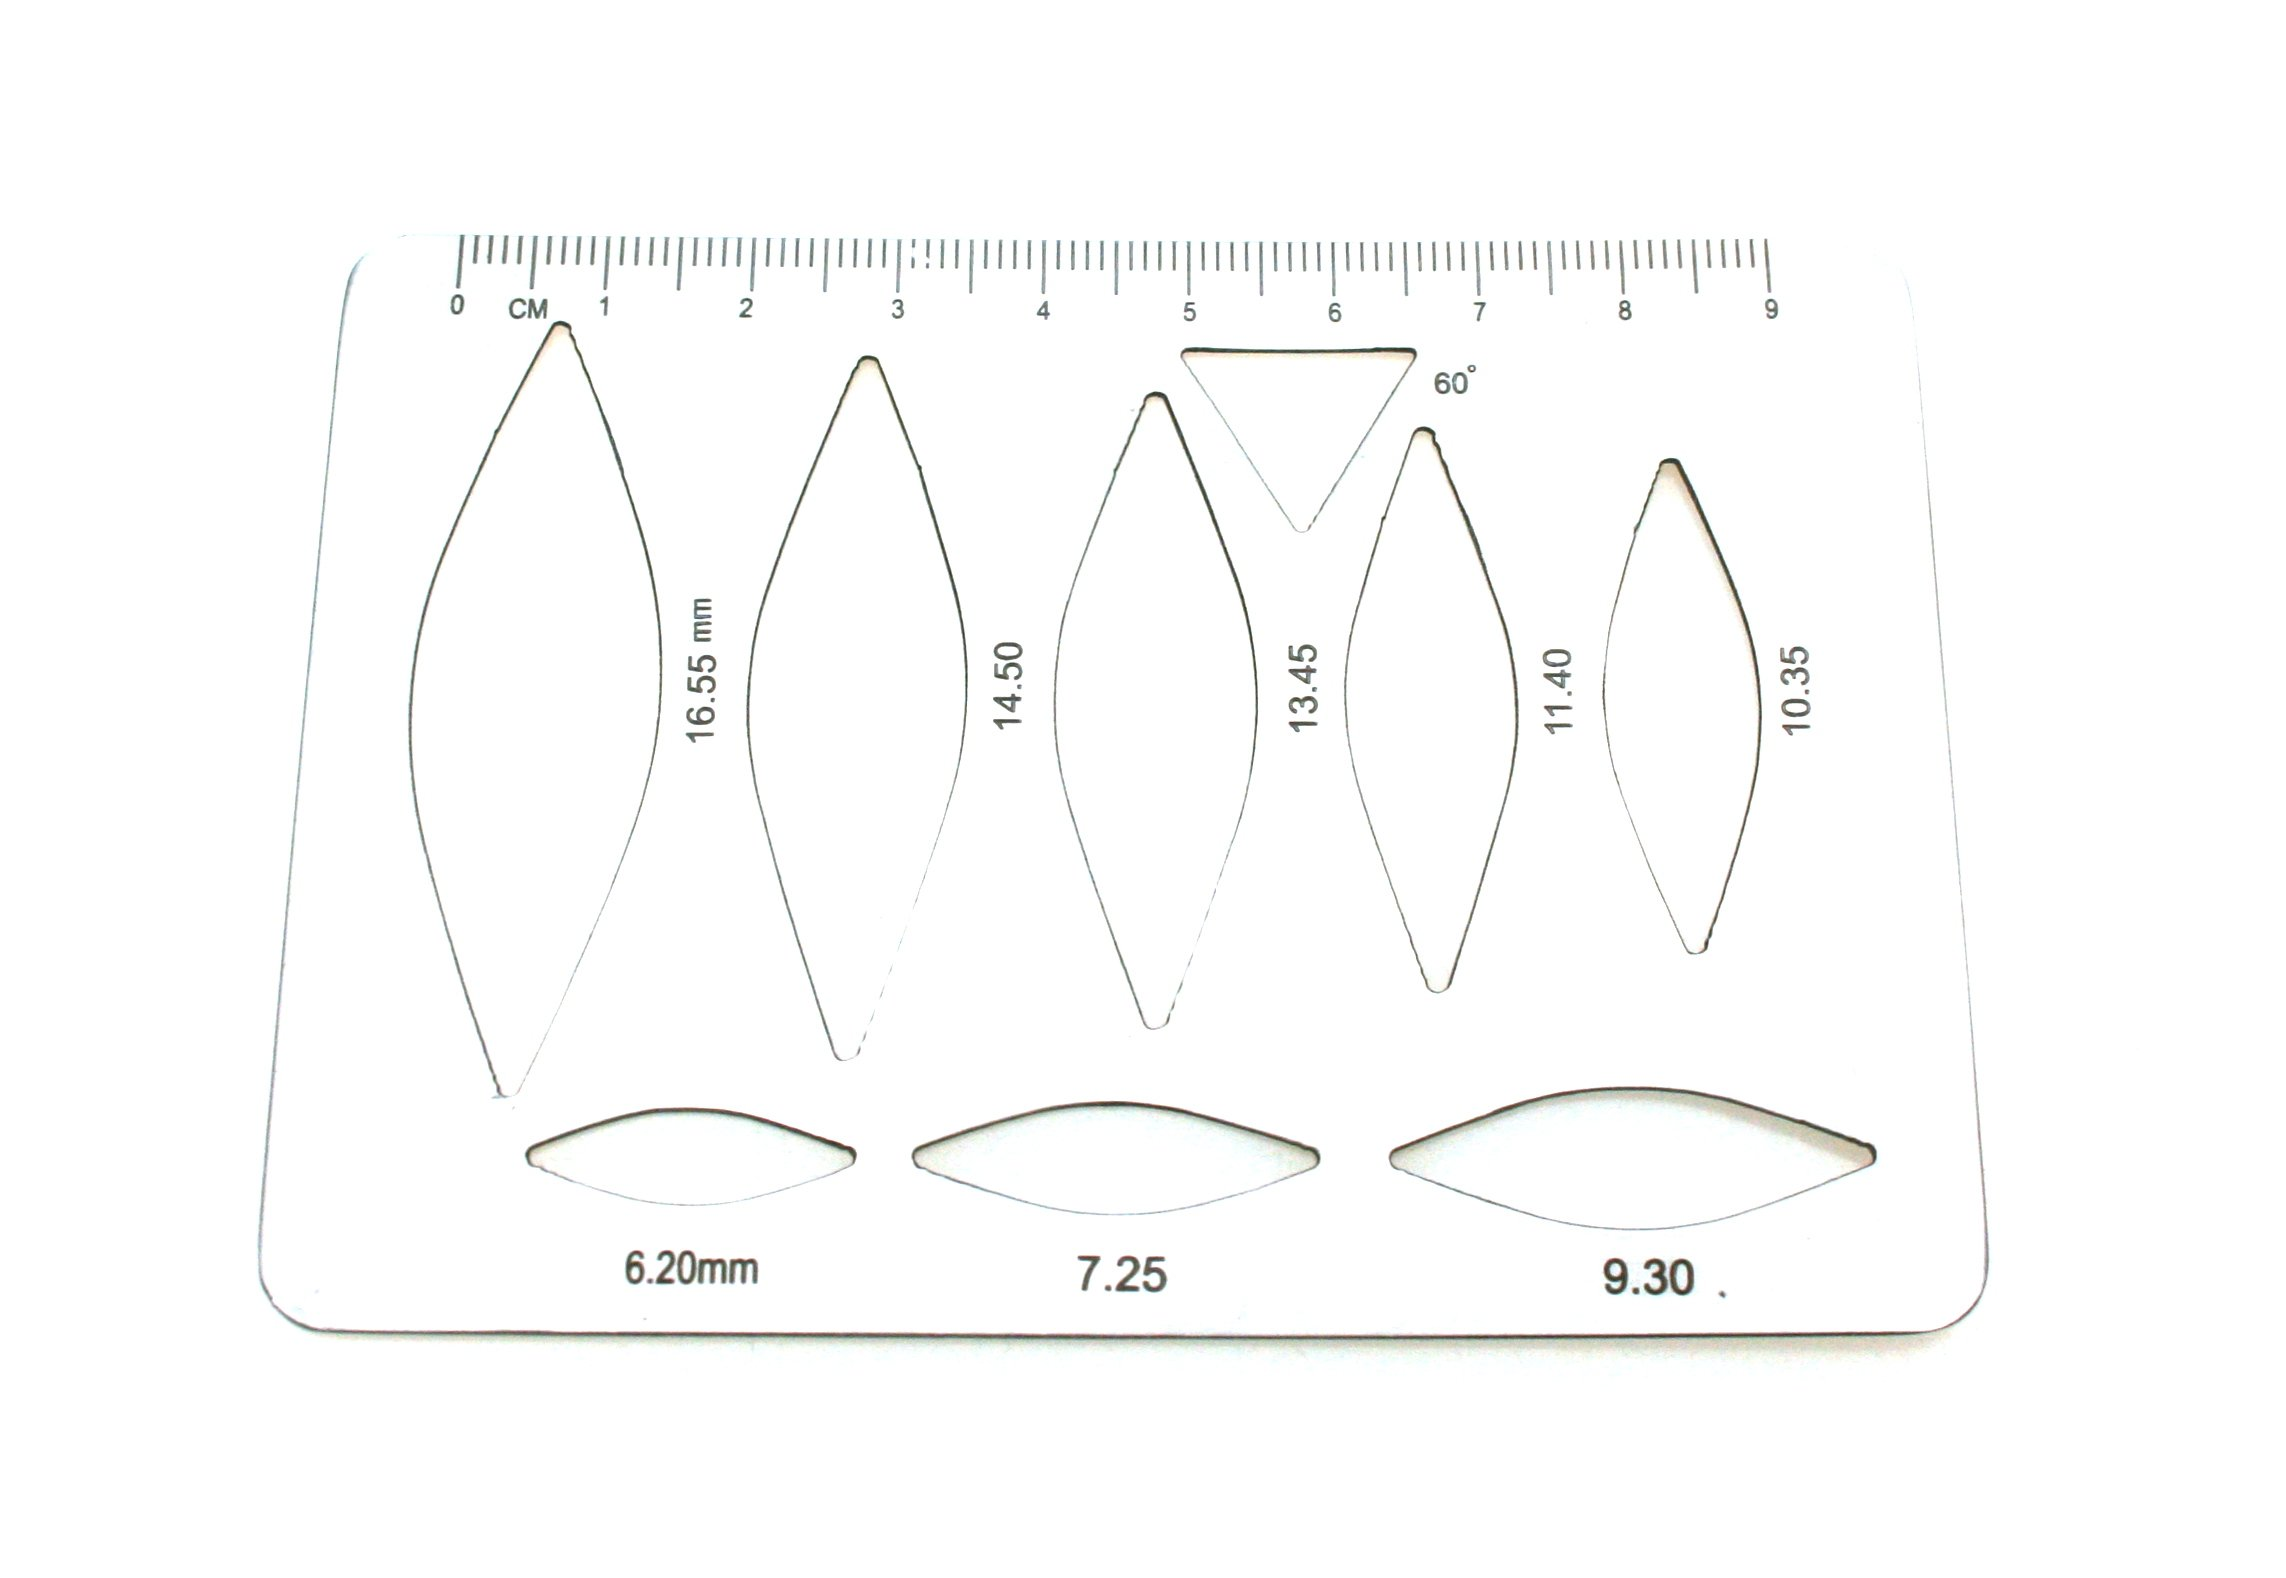 Surgical Template for Marking & Measuring Flexible Stainless Steel | Medixplus